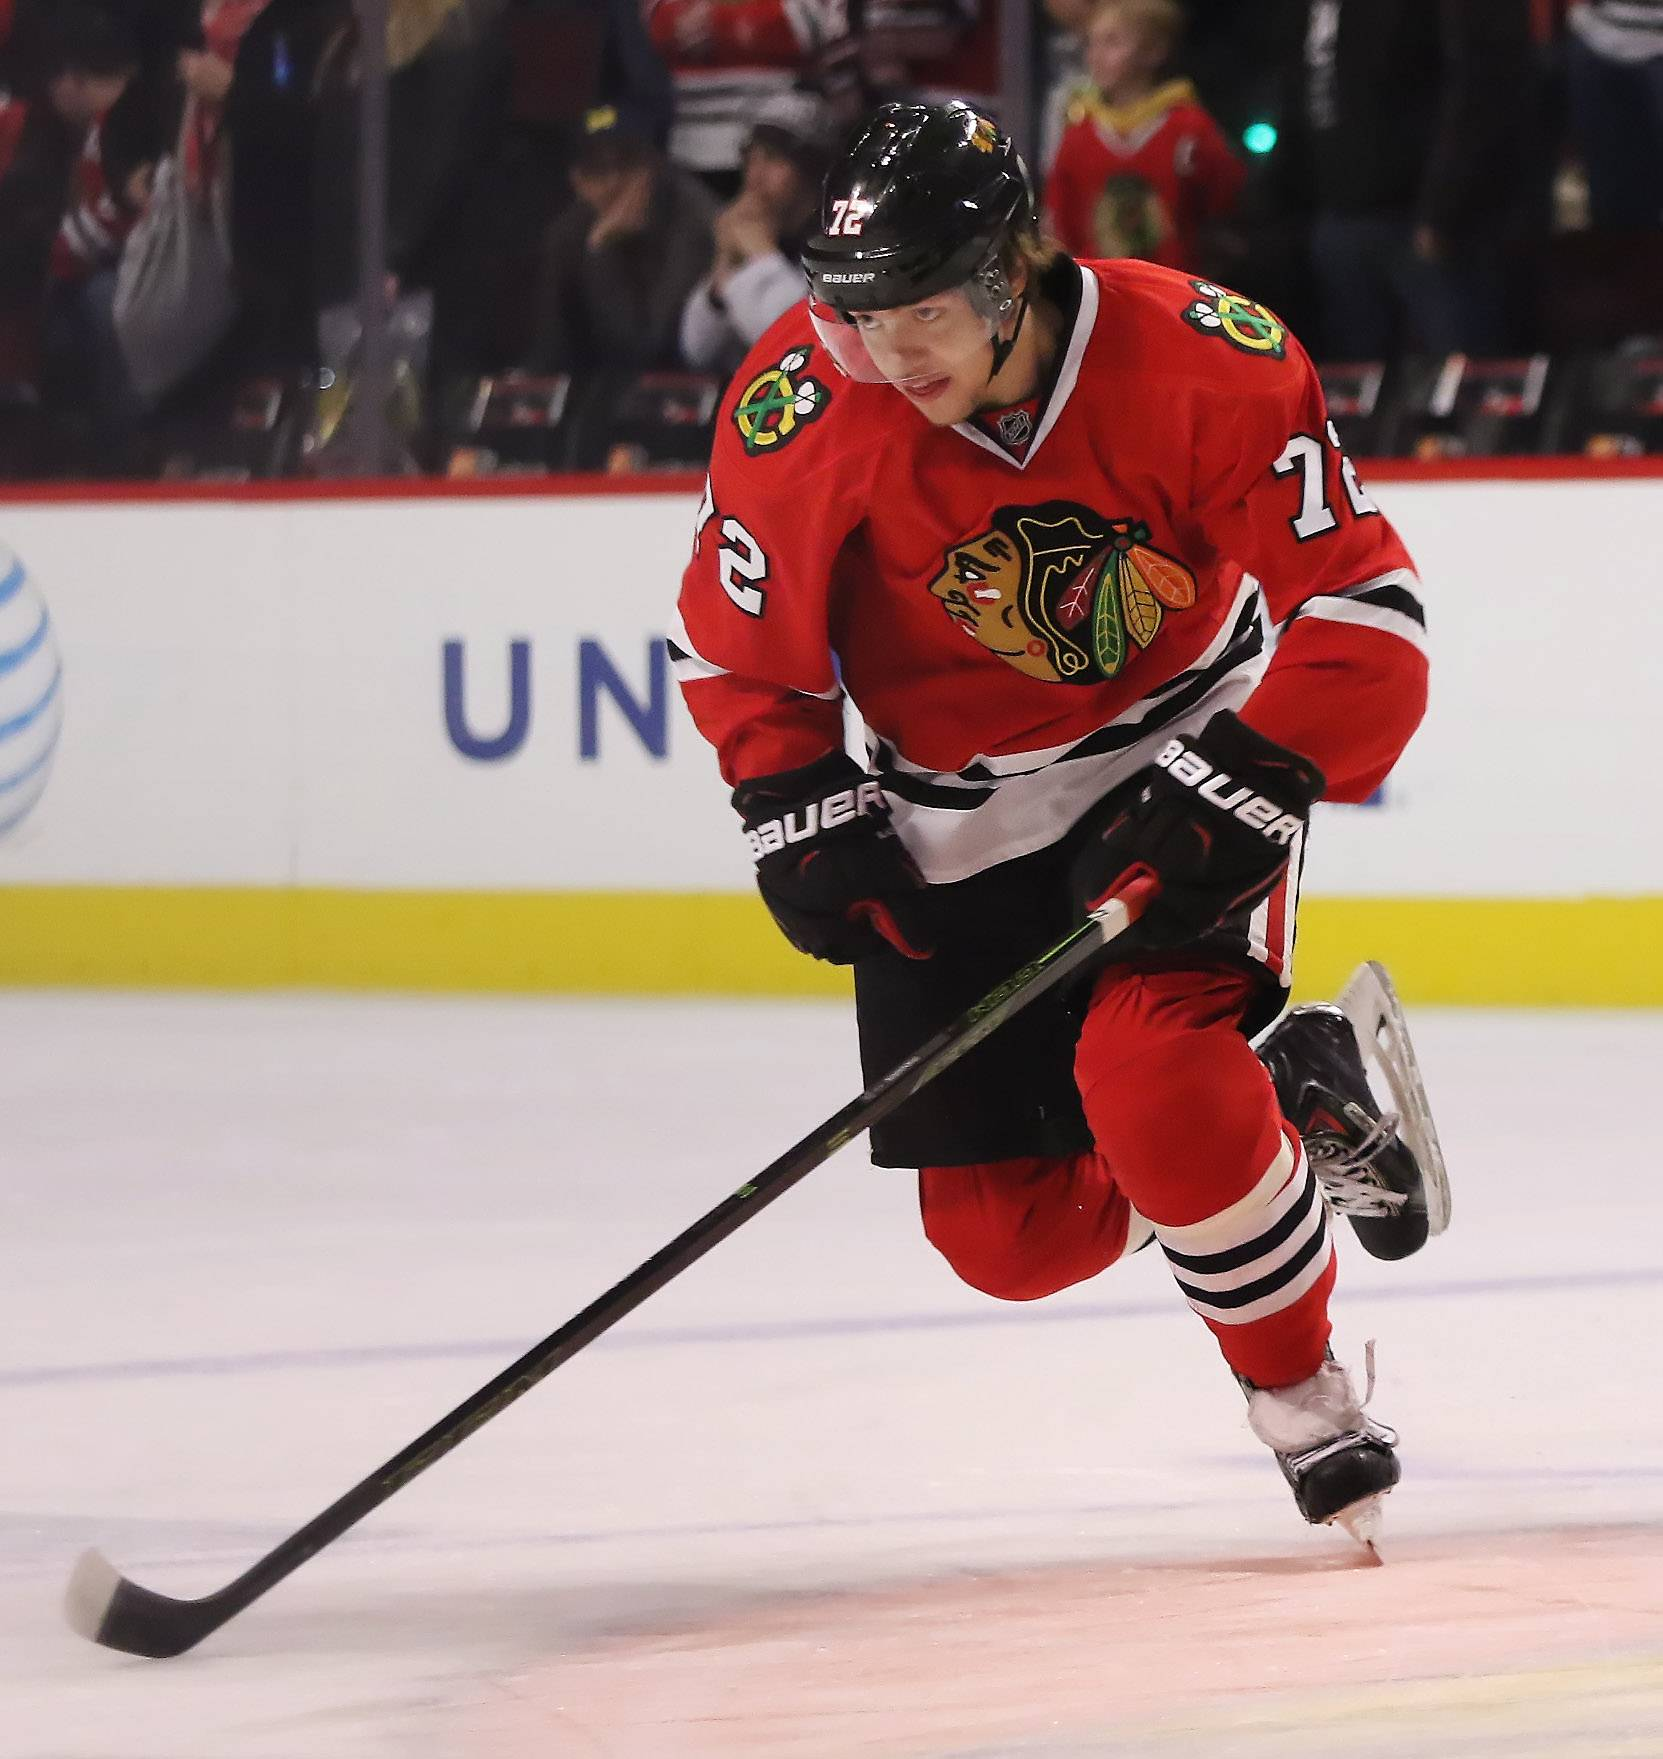 Blackhawks winger Artemi Panarin, the Calder Cup winner as the top rookie last season, would become a restricted free agent if he doesn't sign with the team before the end of this season.